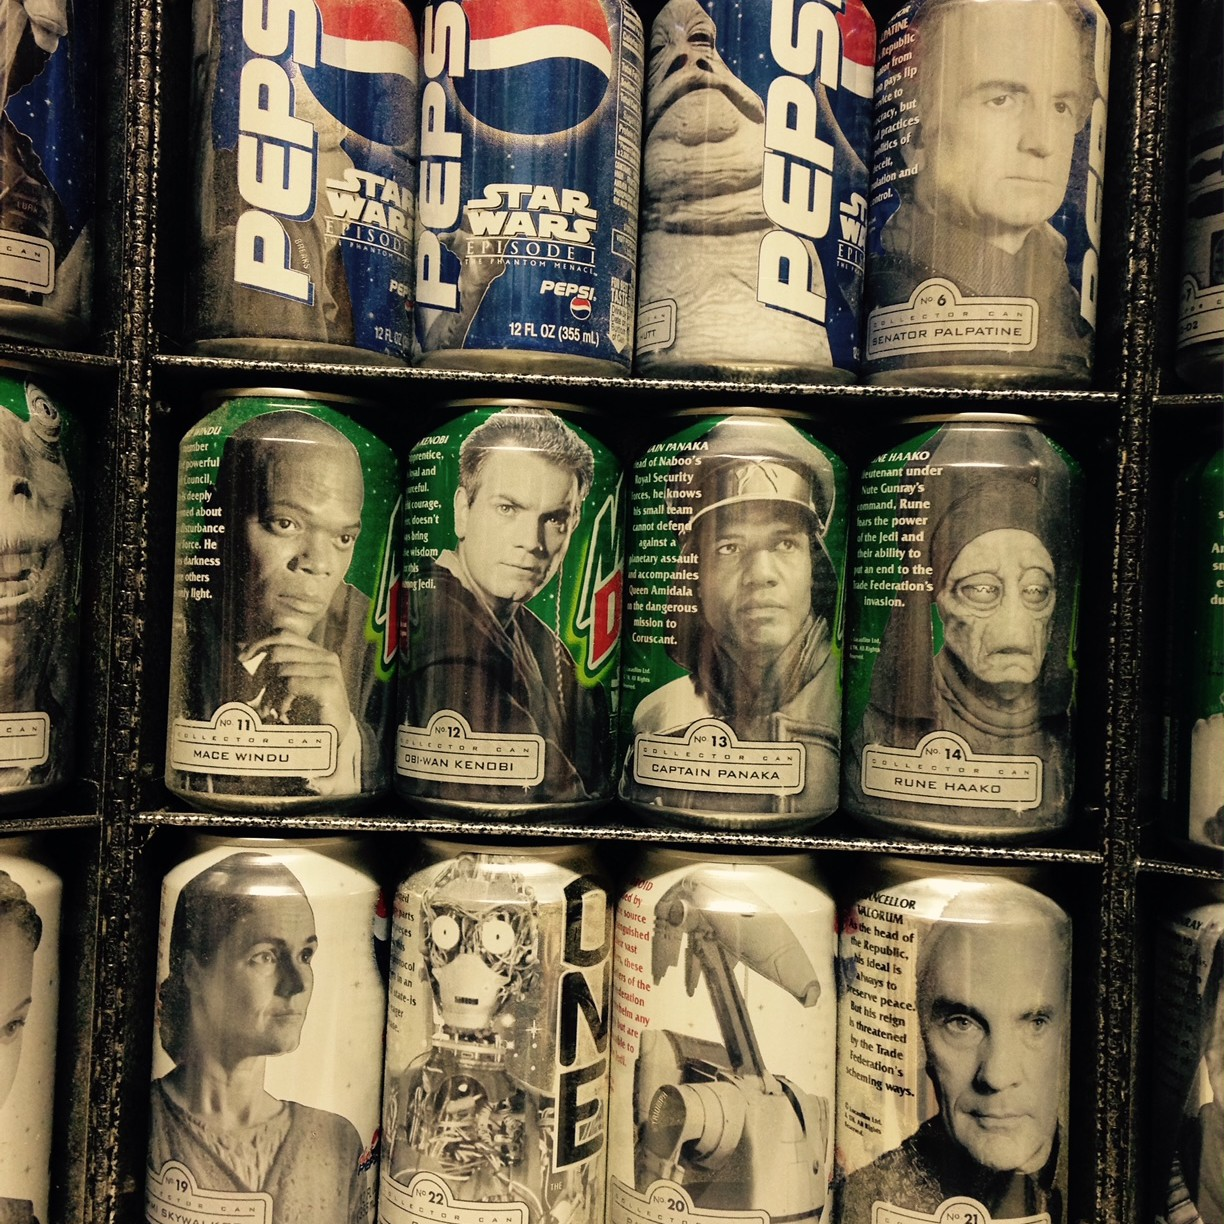 Pepsi One, Mountain Dew Star Wars Cans